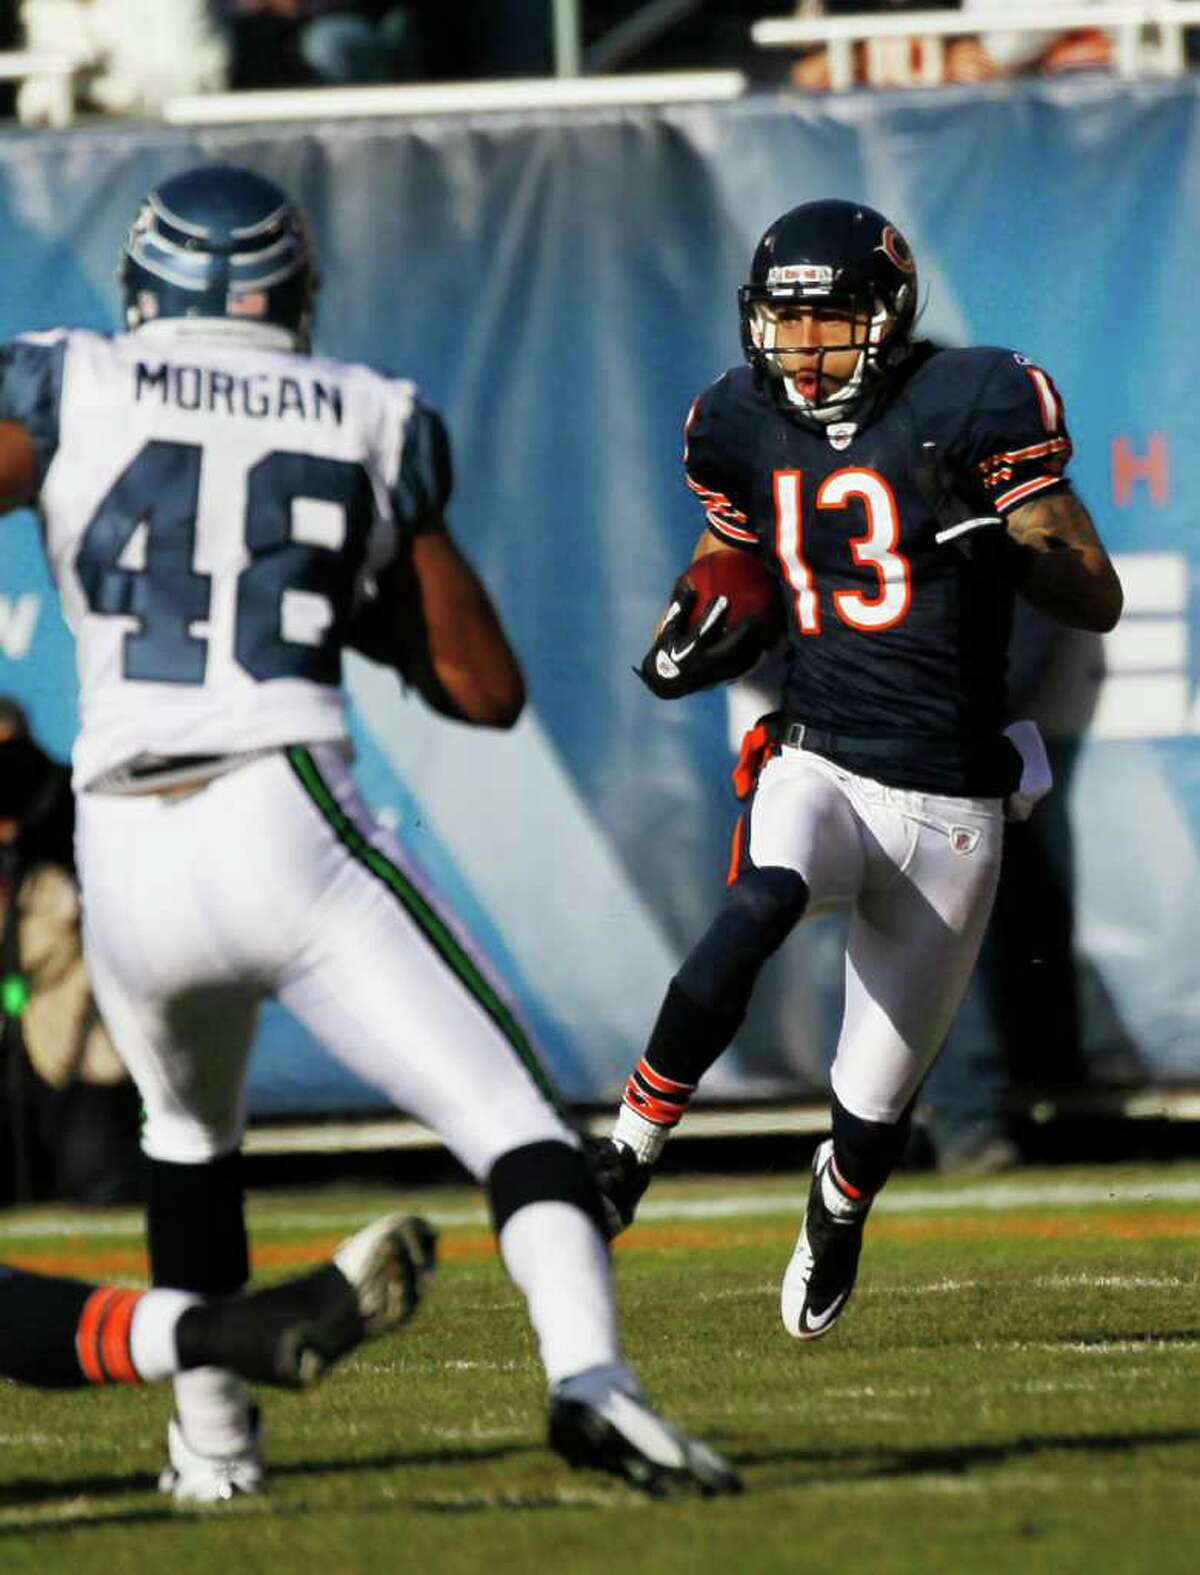 1Chicago Bears' Johnny Knox (13) returns the opening kickoff as Seattle Seahawks' Mike Morgan (48) closes in during the first half of an NFL football game in Chicago, Sunday, Dec. 18, 2011.